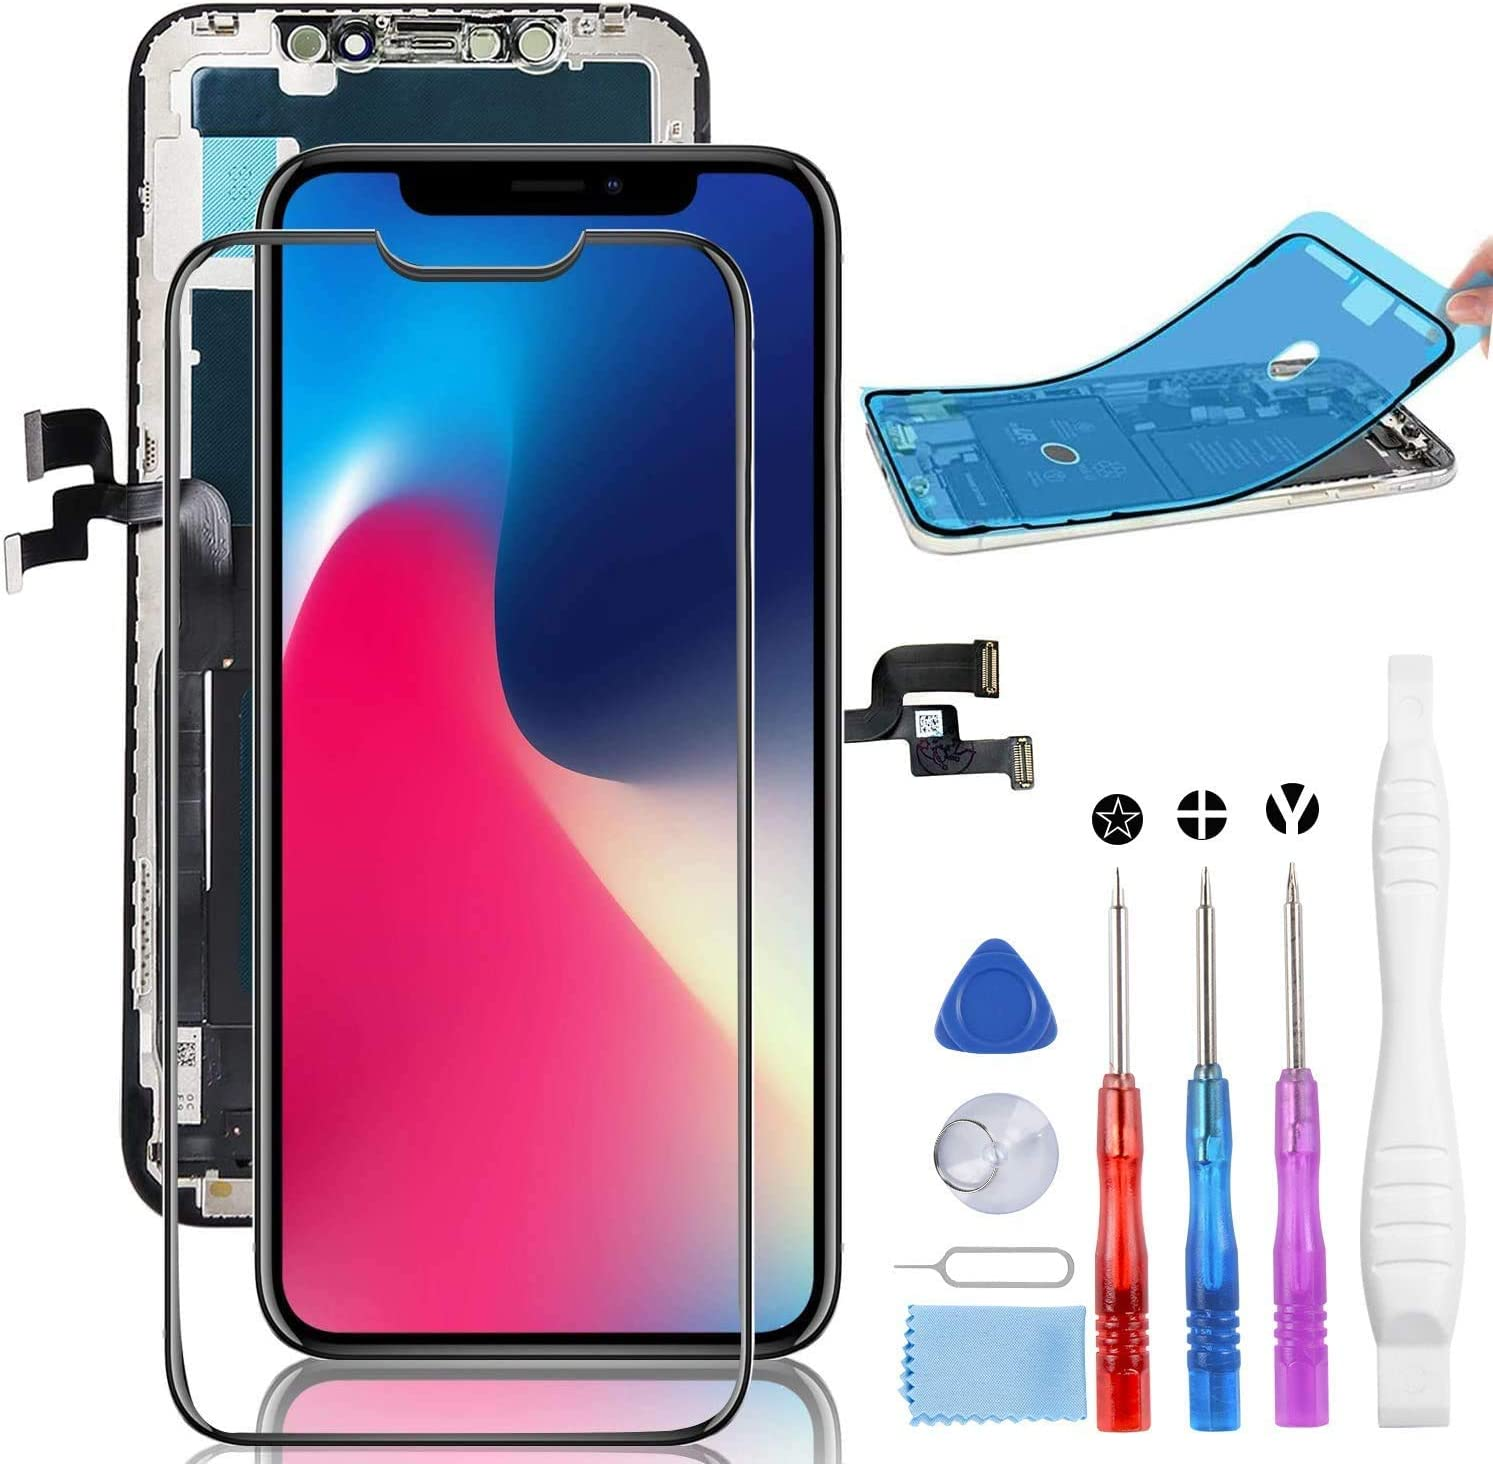 YPLANG Screen Replacement for iPhone X Screen Replacement OLED [NOT LCD] Display 3D Touch Digitizer Frame Assembly Full Repair Kit